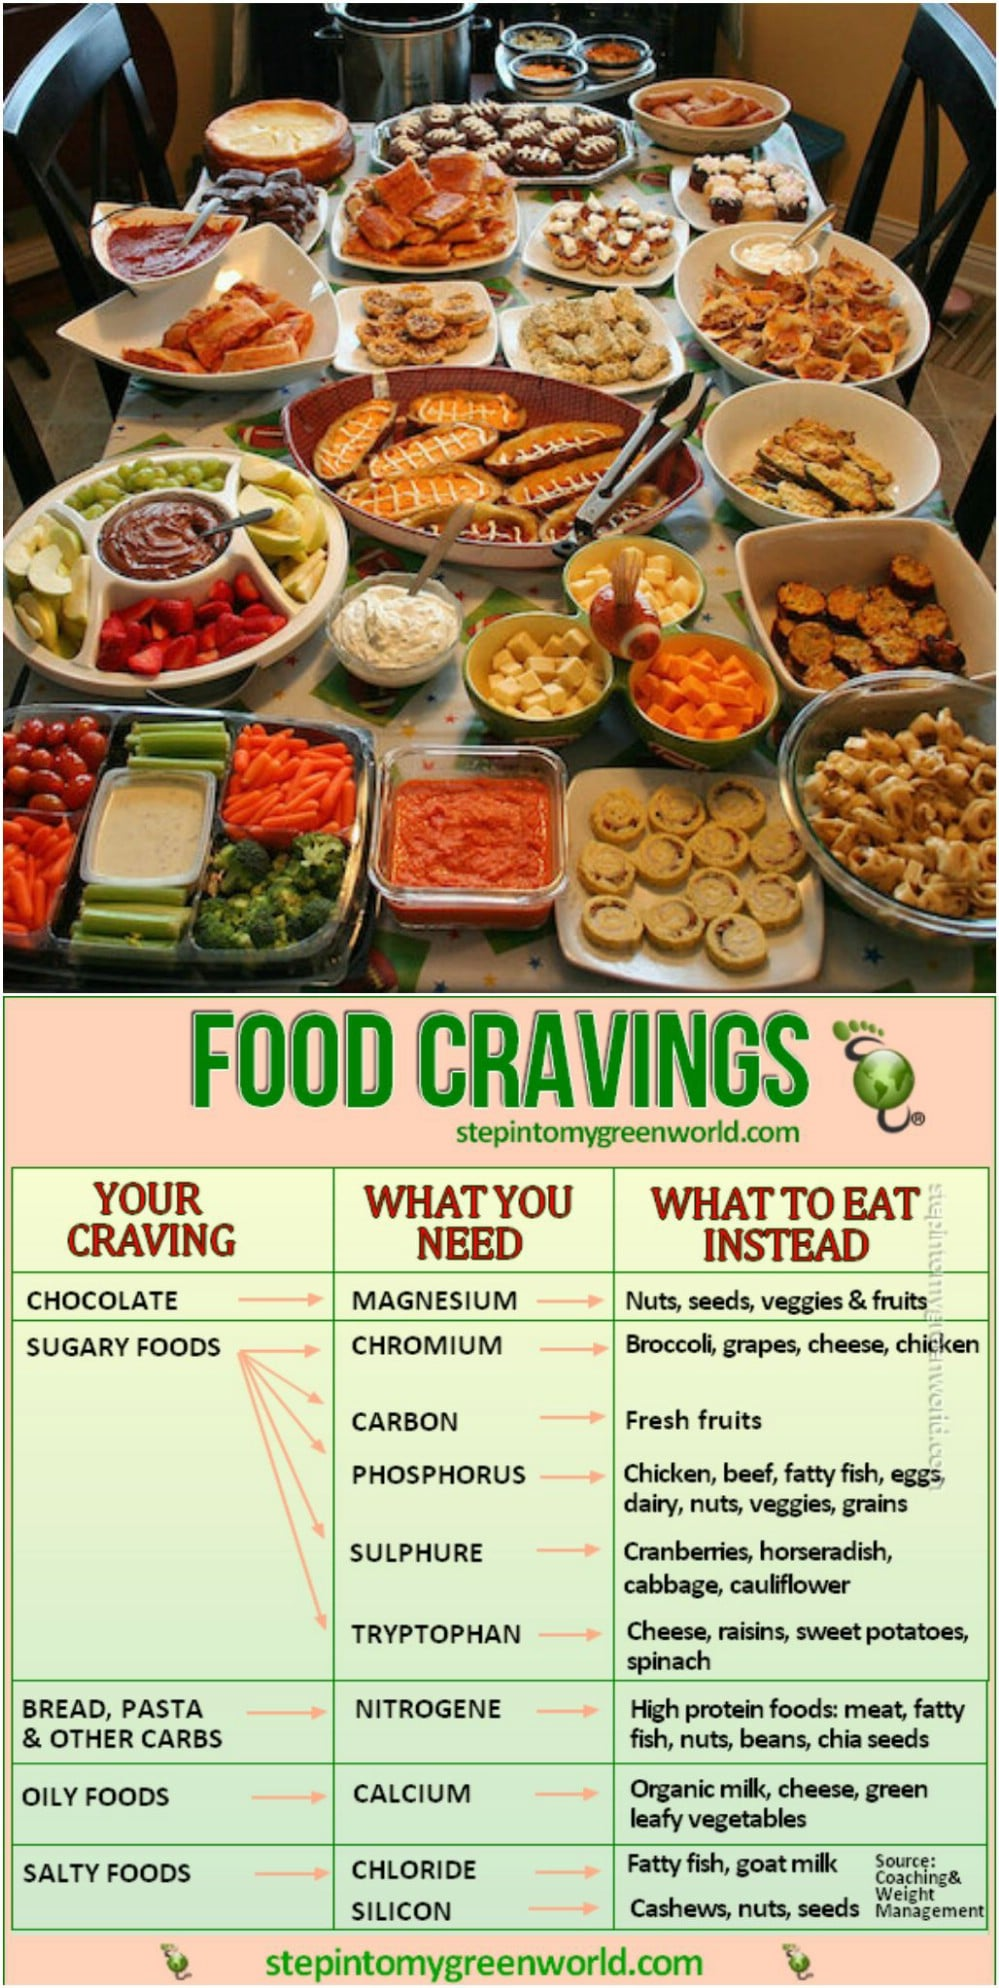 The Guide to Food Cravings